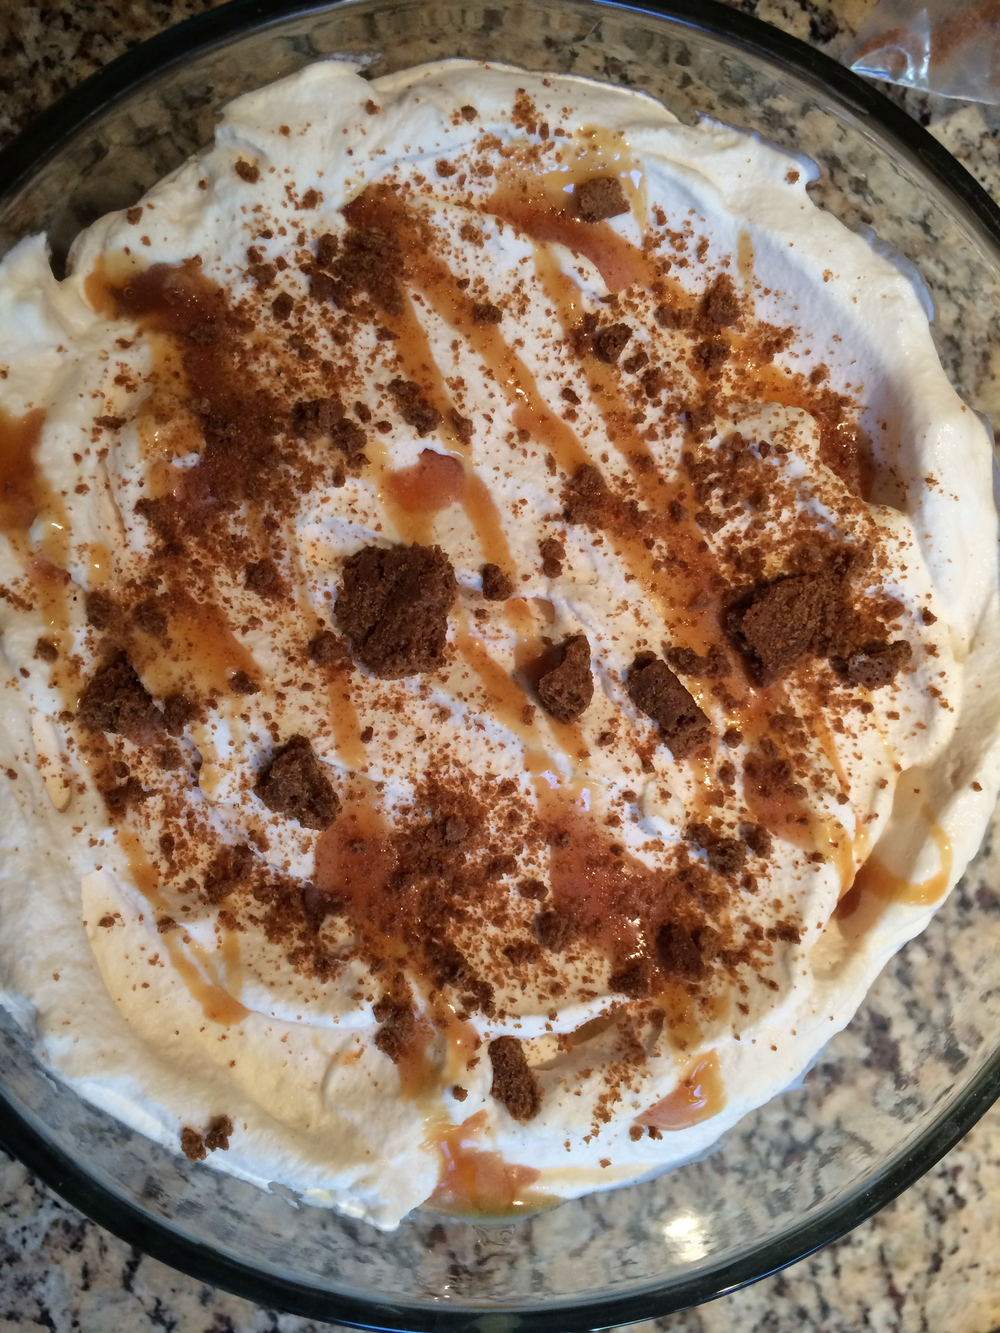 top with whipped cream, a drizzle of caramel and some cookie crumbs